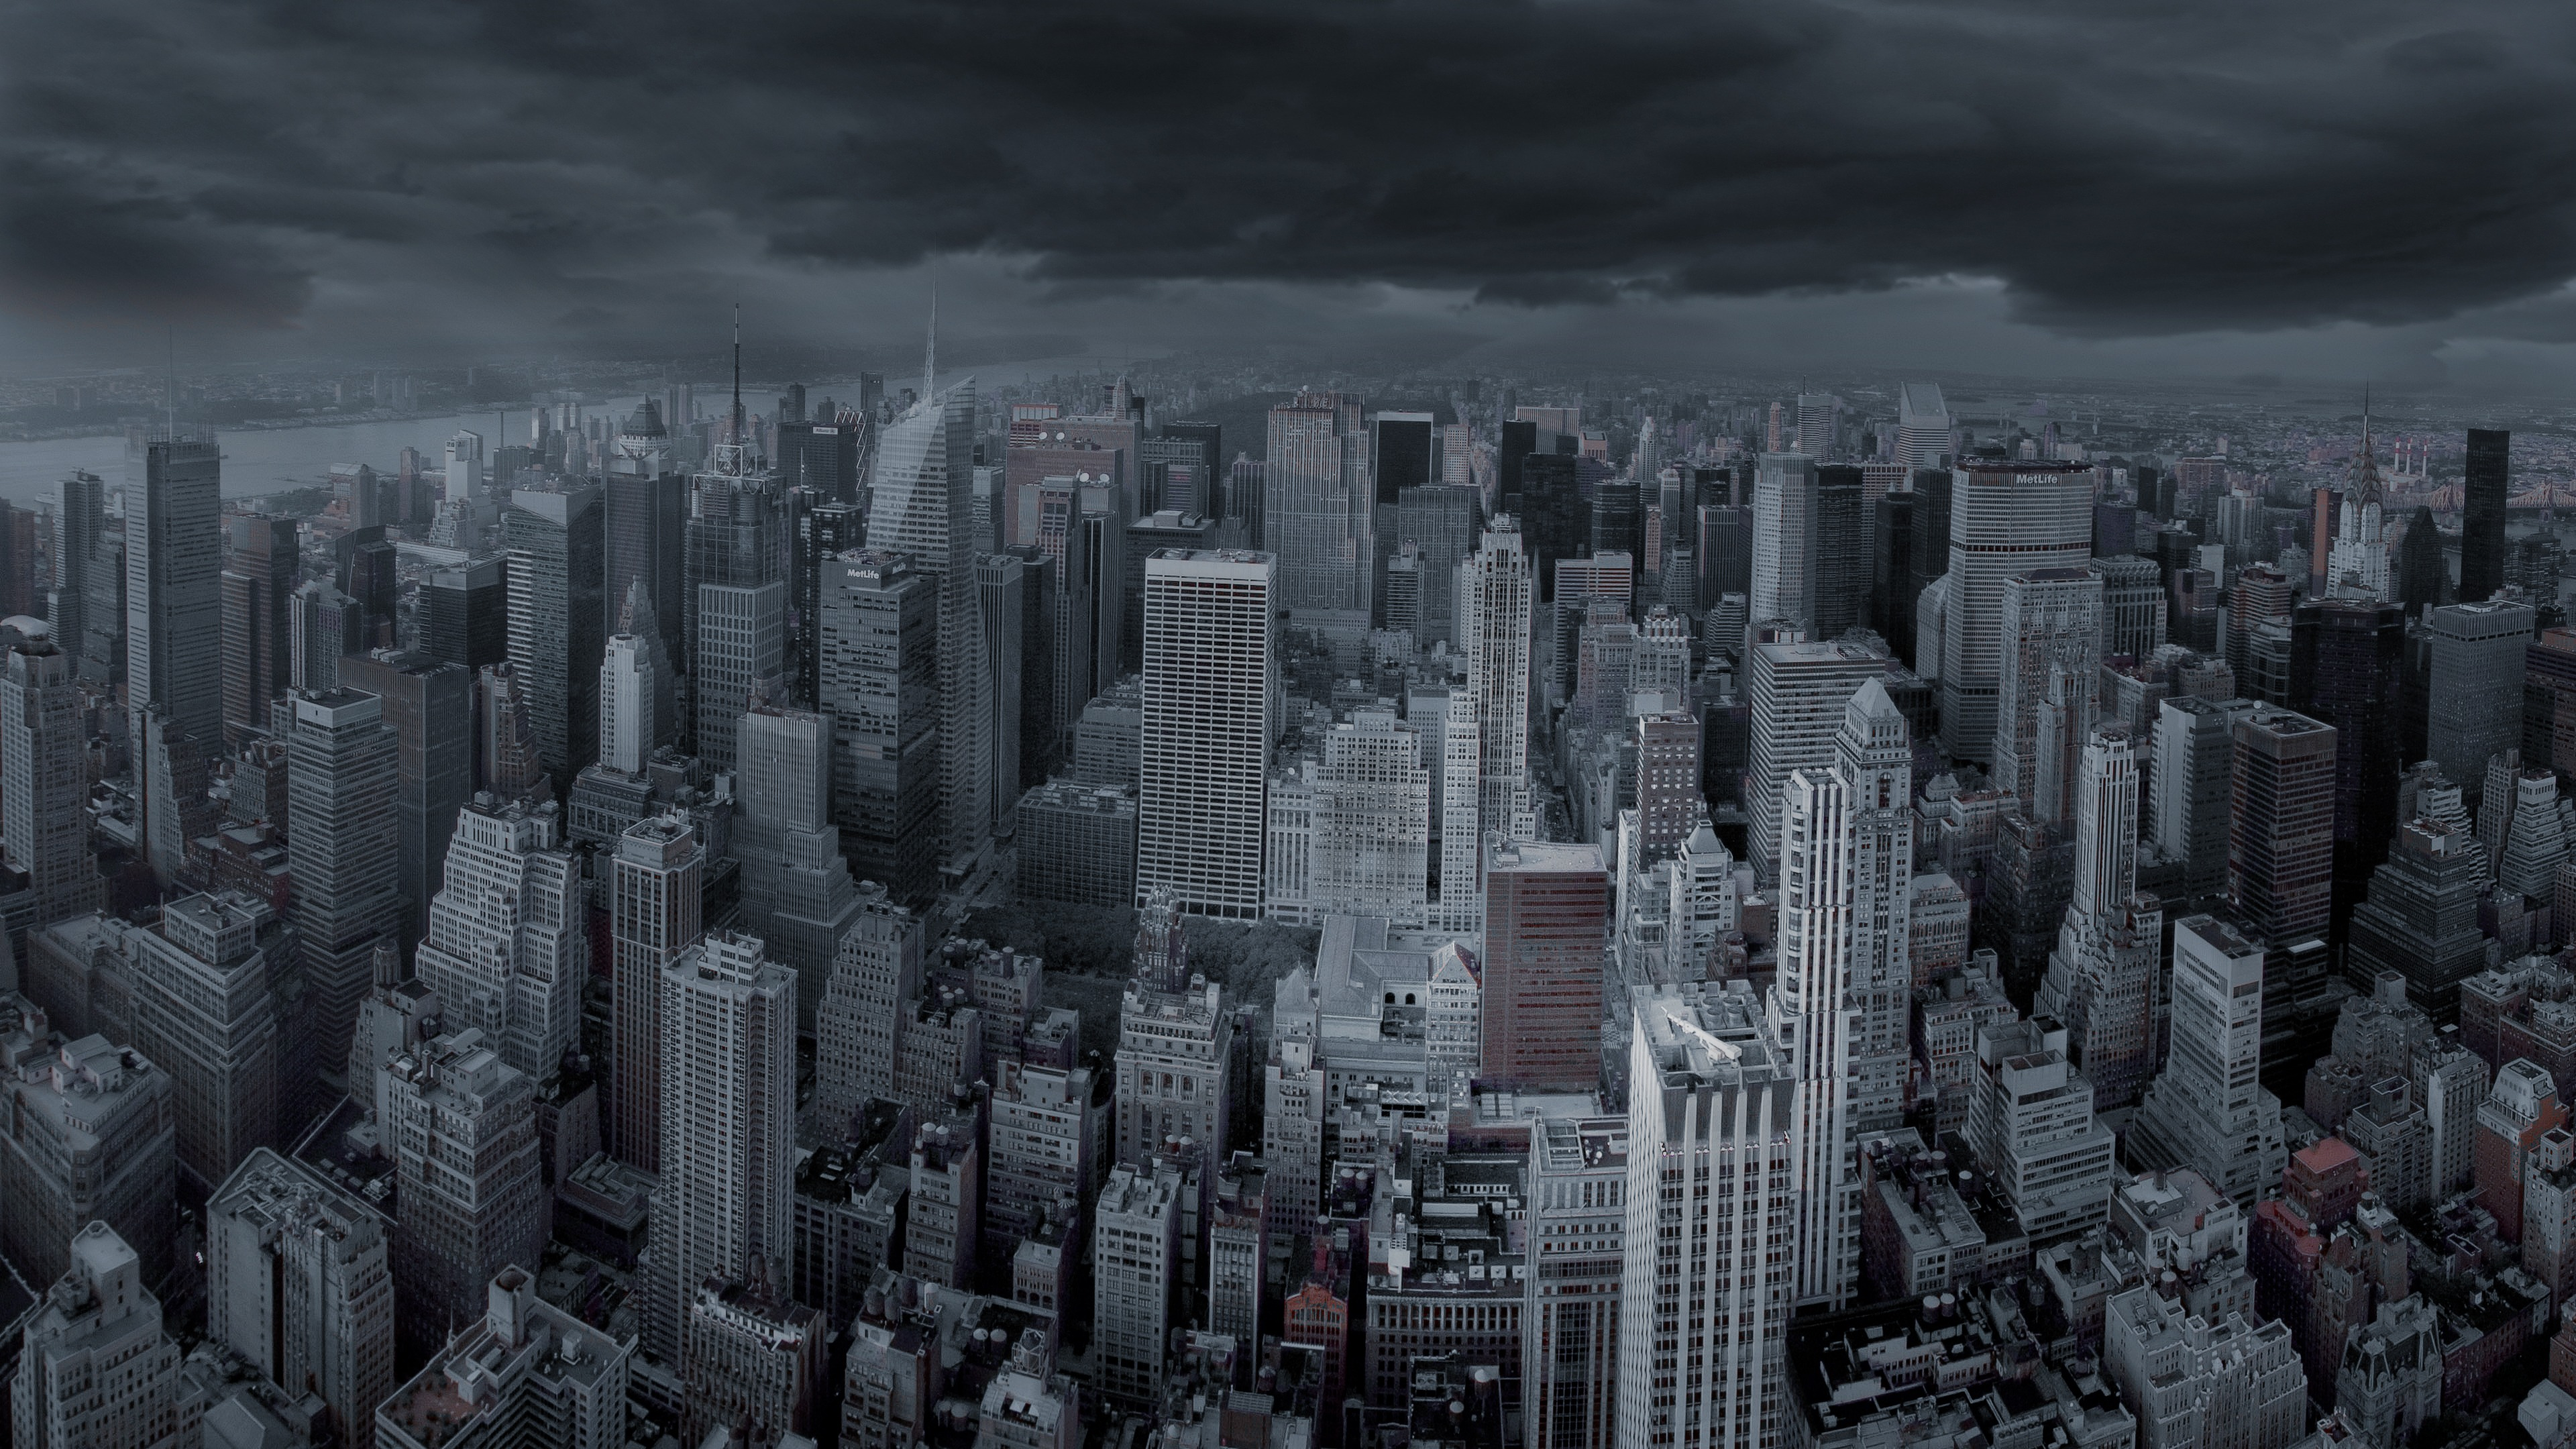 New York City Dark Skies Panorama 4K Ultra HD Desktop Wallpaper 3840x2160